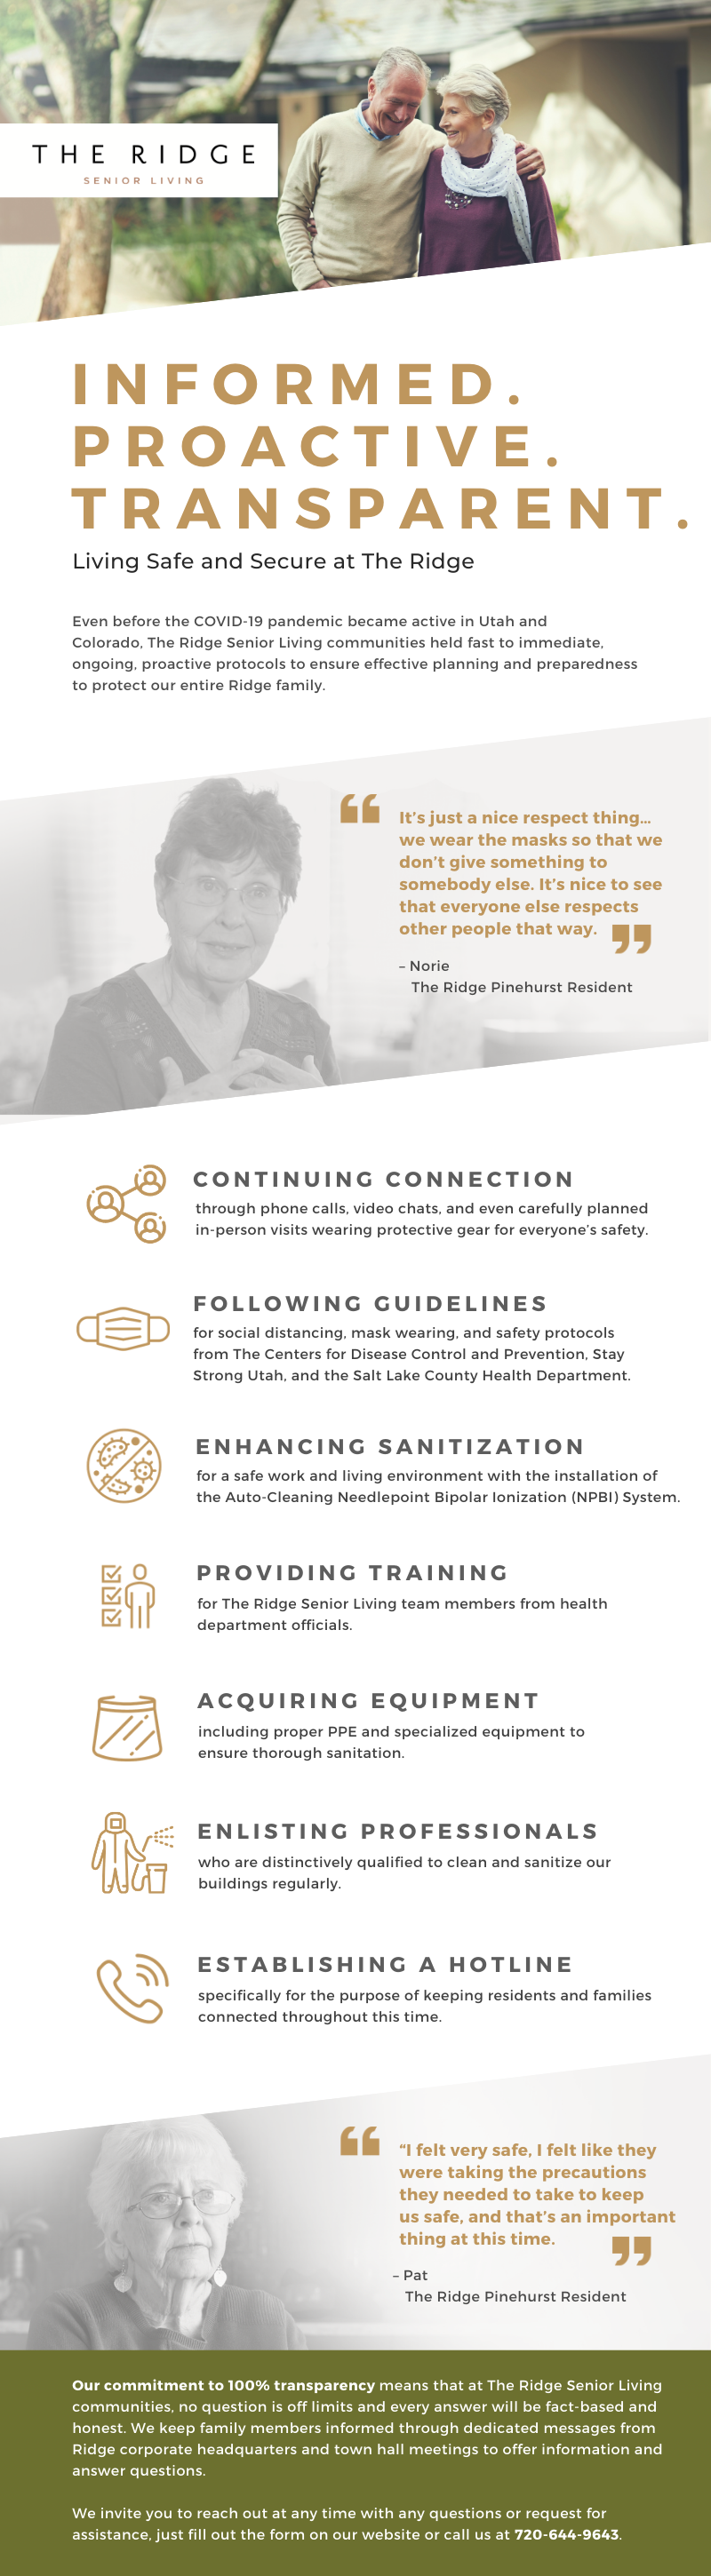 An infographic on how The Ridge communities prioritize safety